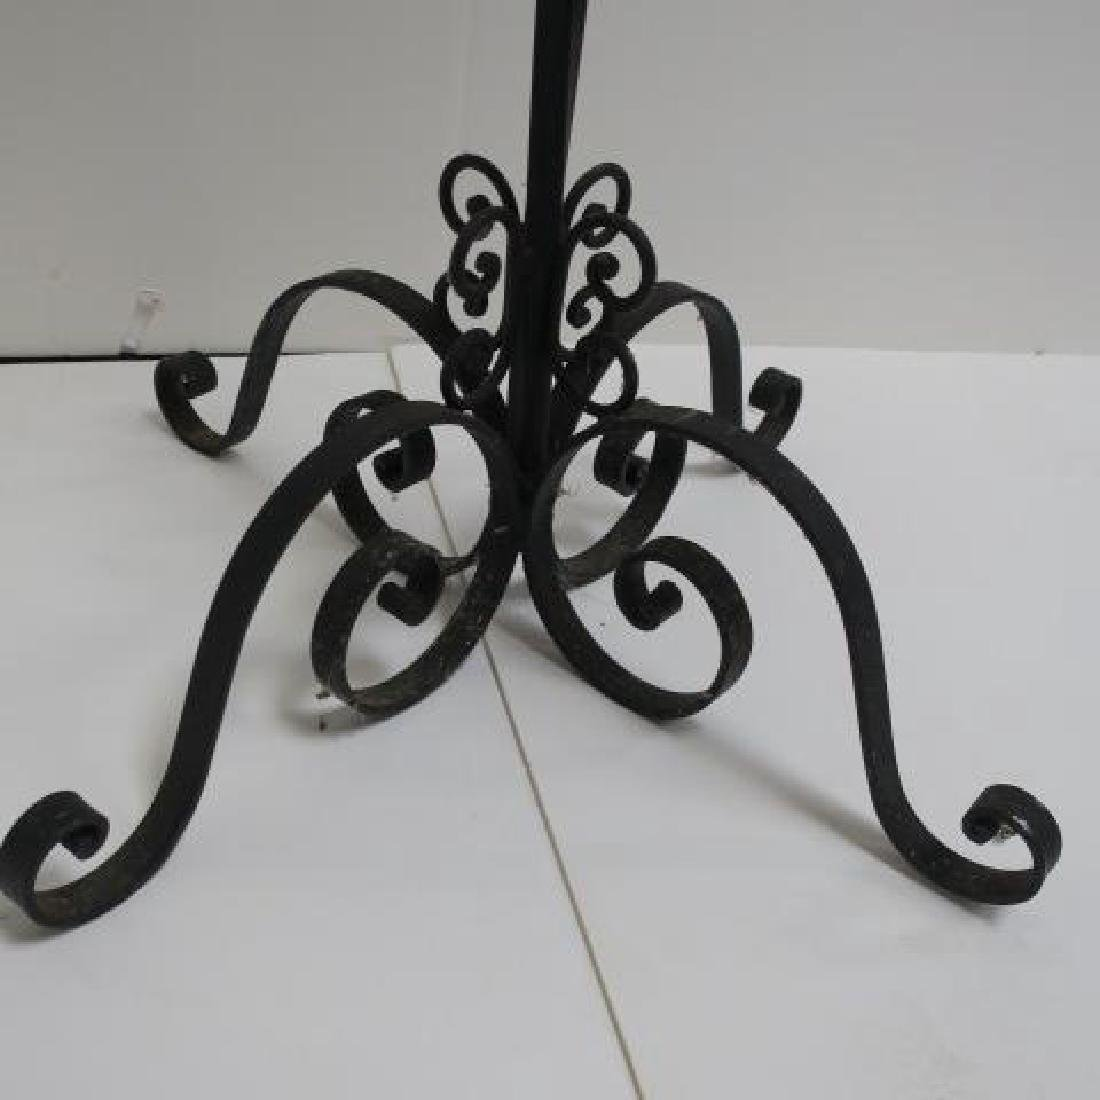 Black Wrought Iron Floor Candle Stand: - 3